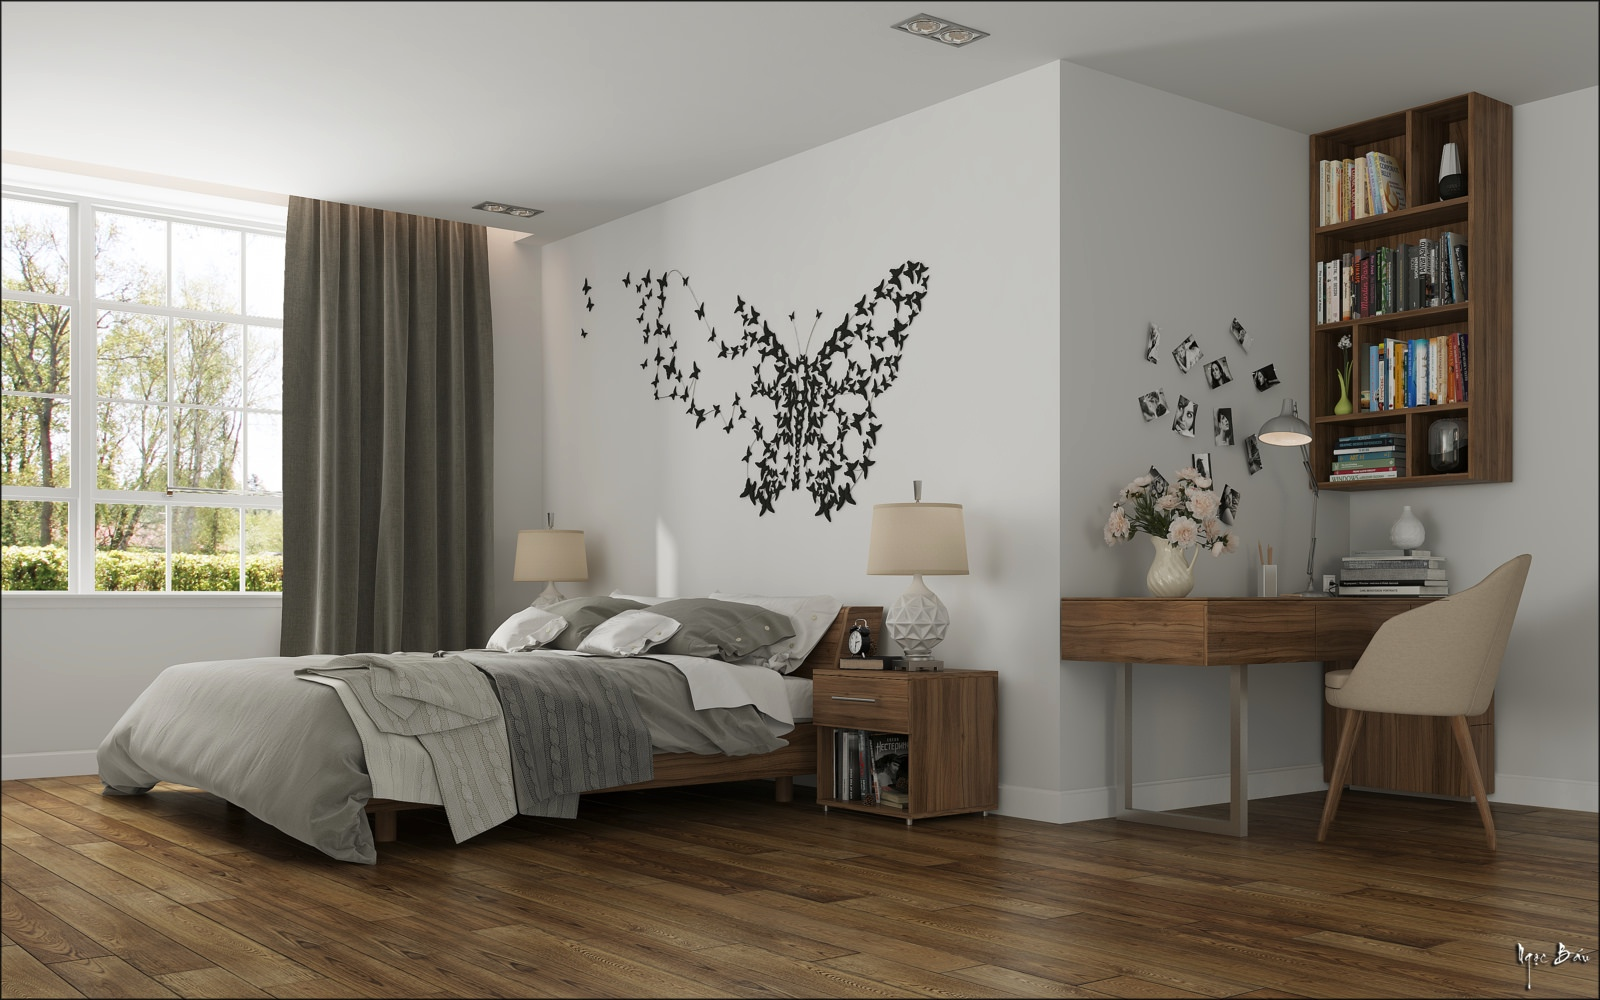 Bedroom butterfly wall art interior design ideas Bedroom wall designs in pakistan